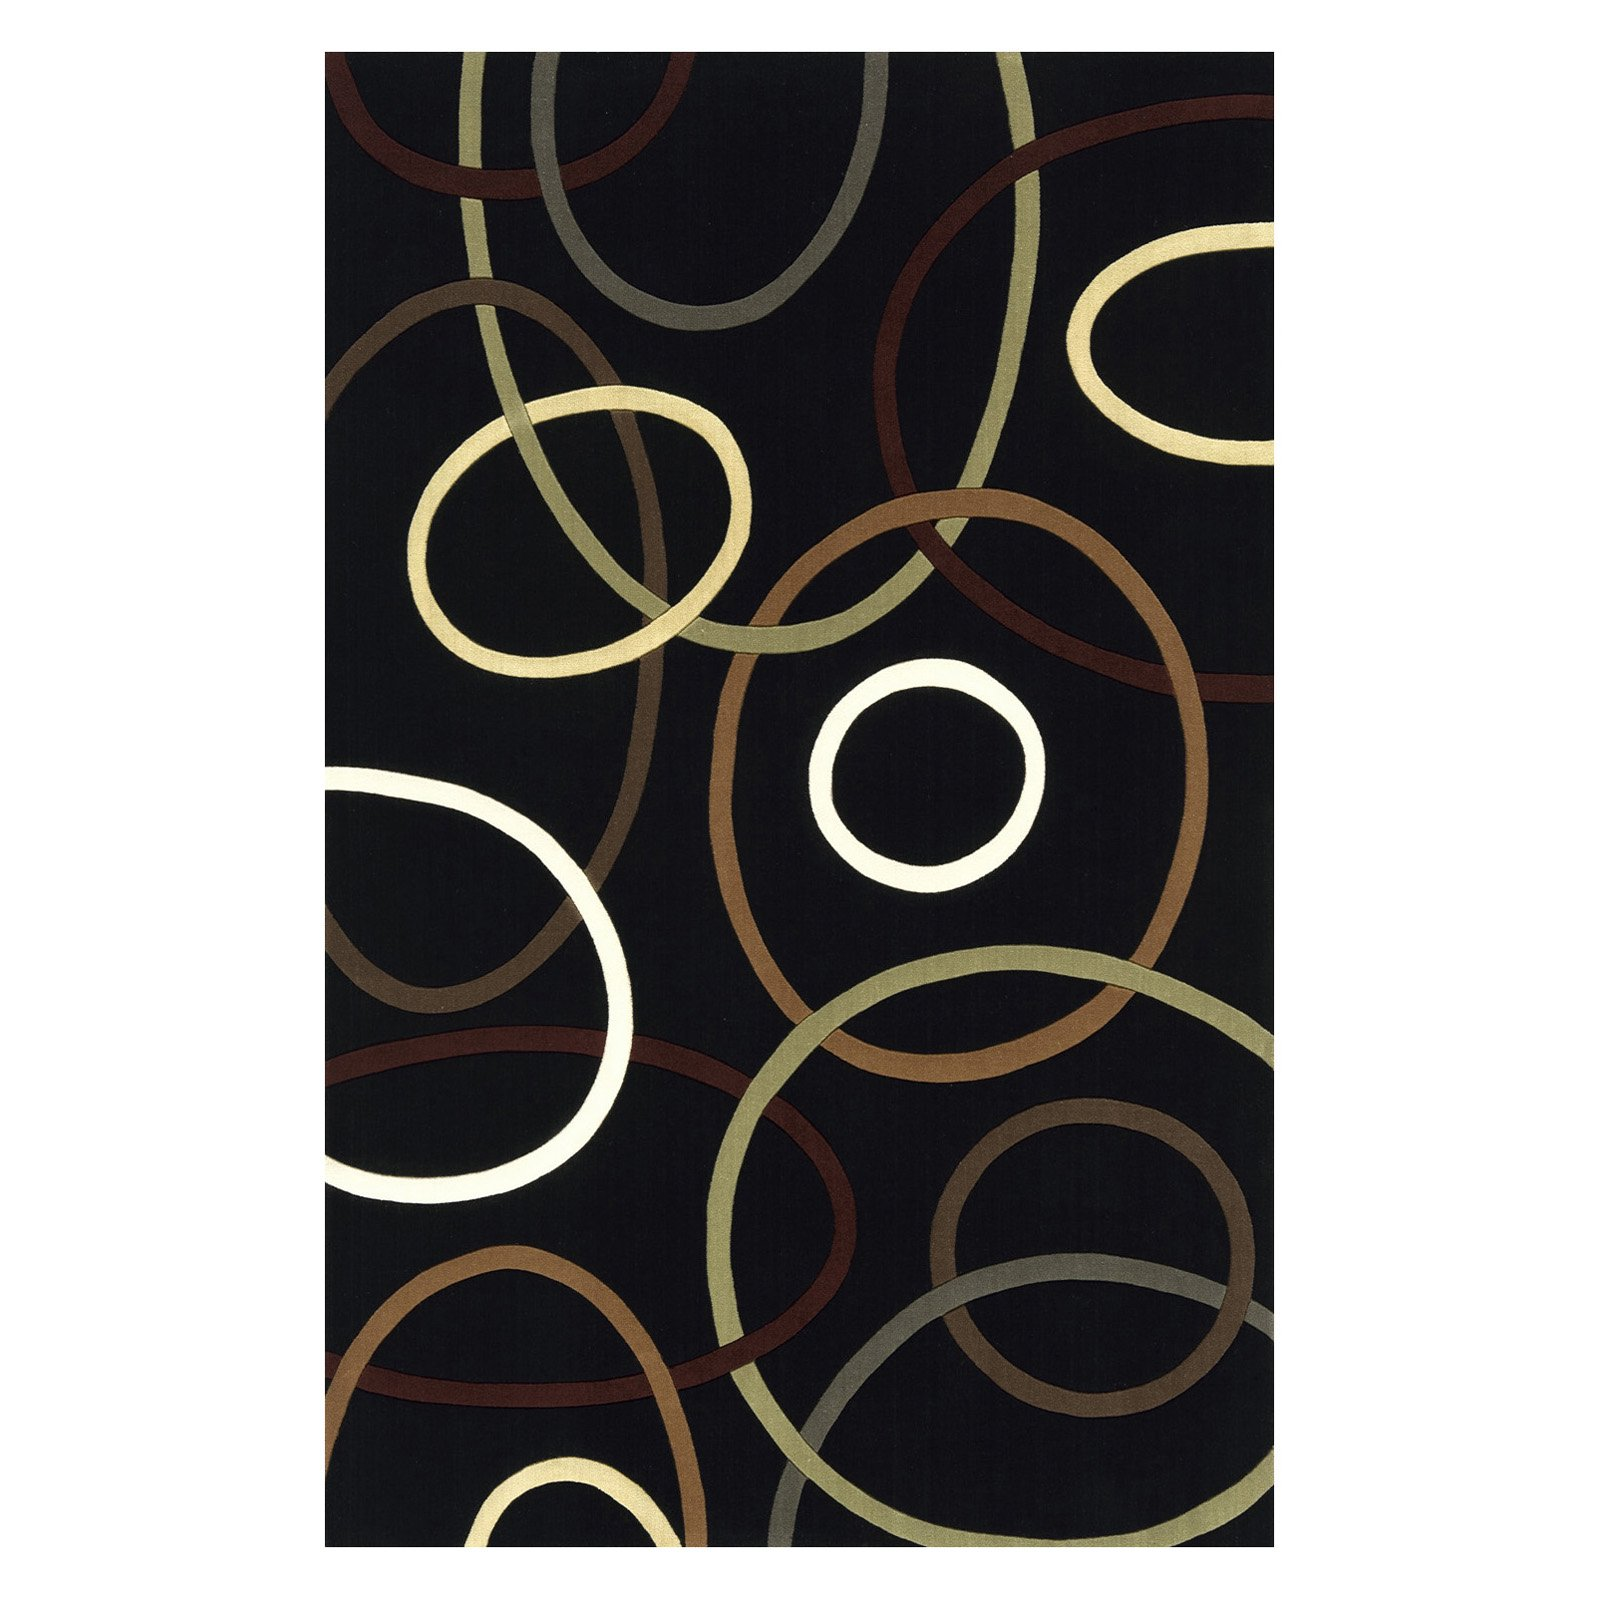 Momeni Elements Circular Envy Black EL-09 Rug-8 x 11 ft. by Momeni